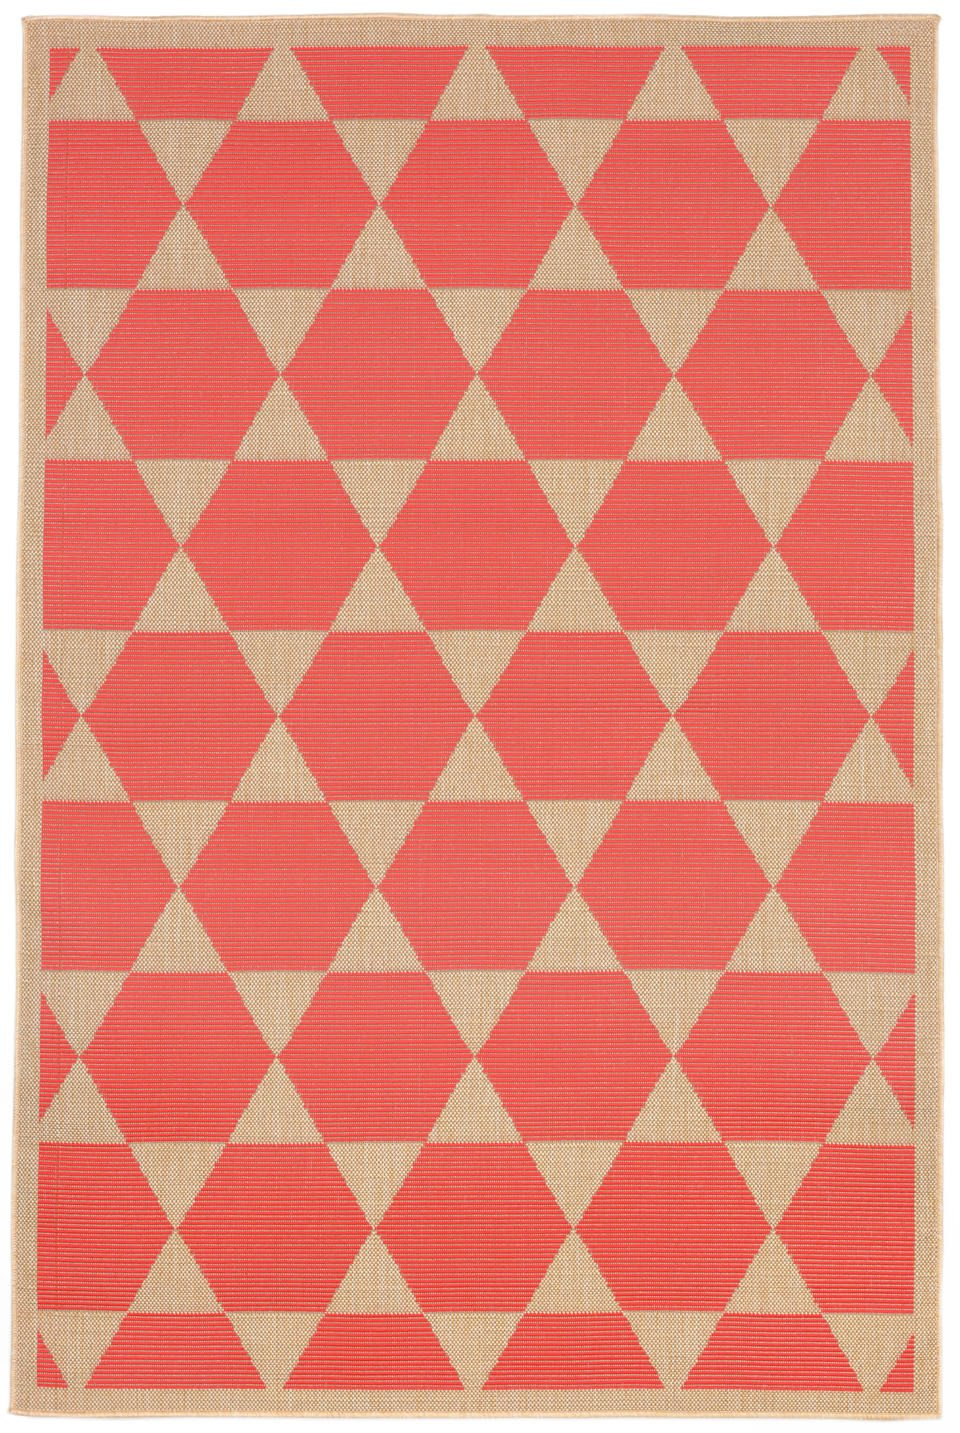 Trans-Ocean Imports TER23179627 Terrace Collection Orange Finish Everywear Rug from Trans-Ocean